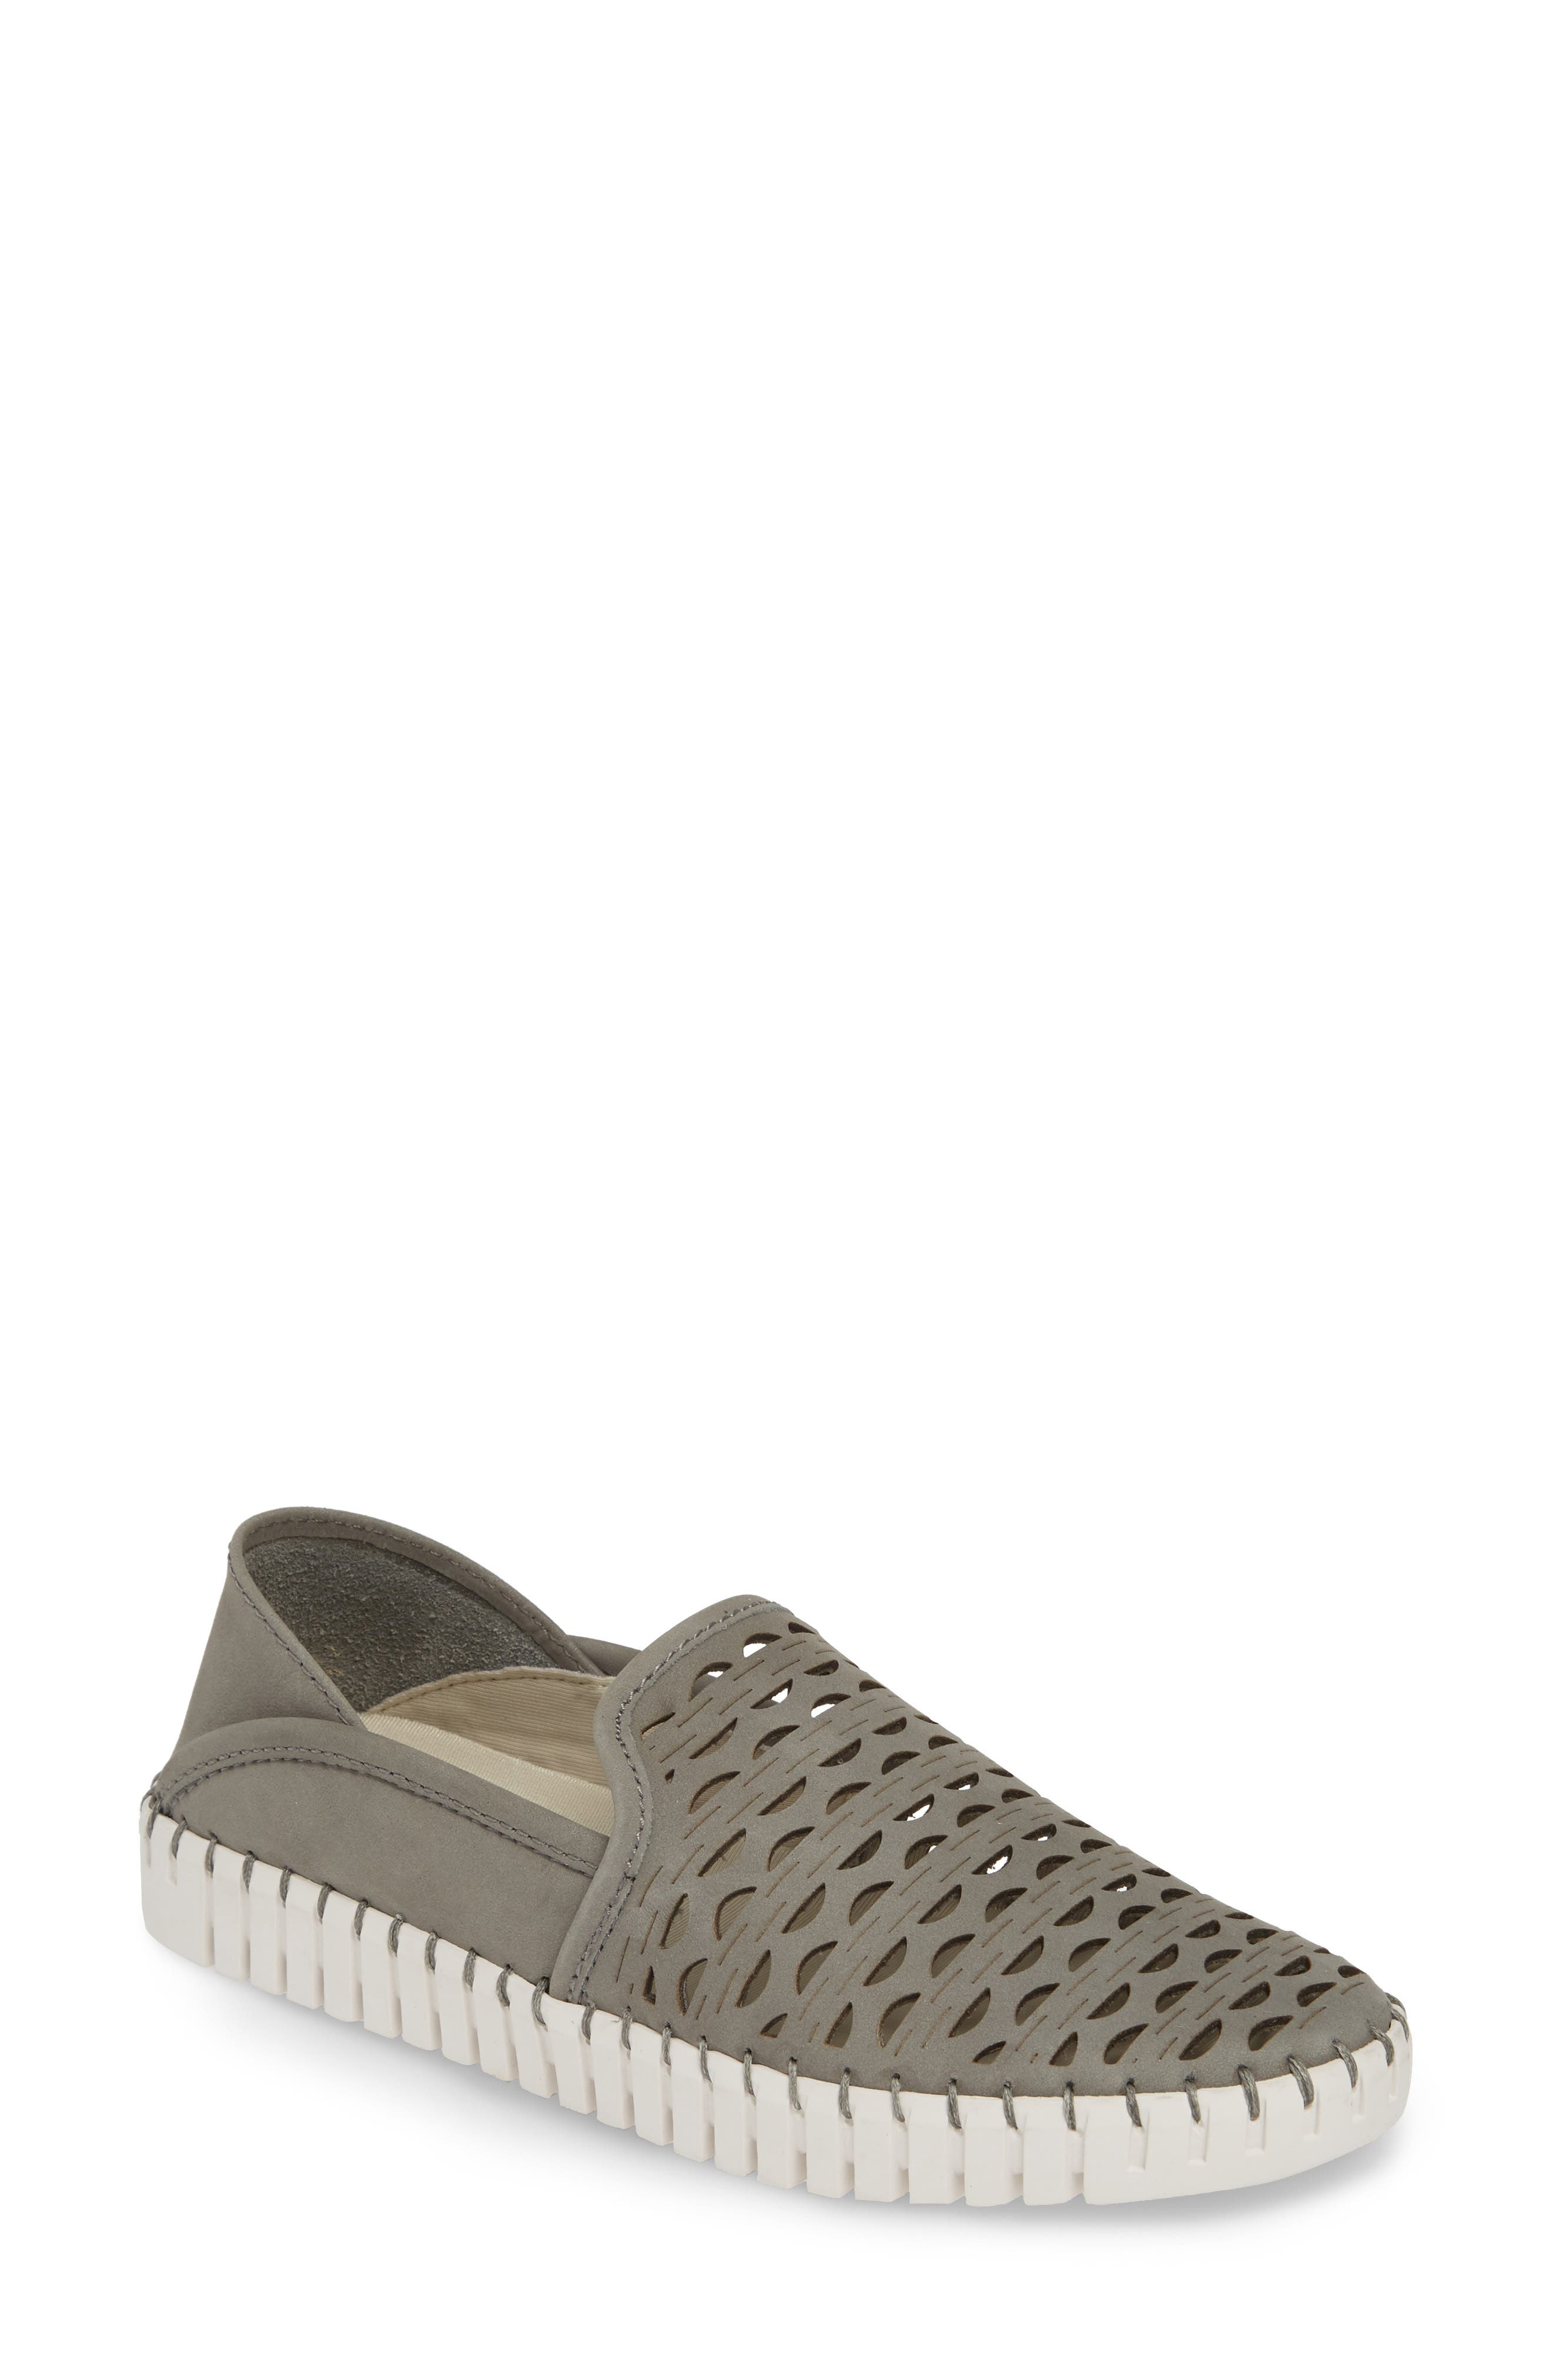 Janelle Perforated Slip-On, Main, color, GREY NUBUCK LEATHER